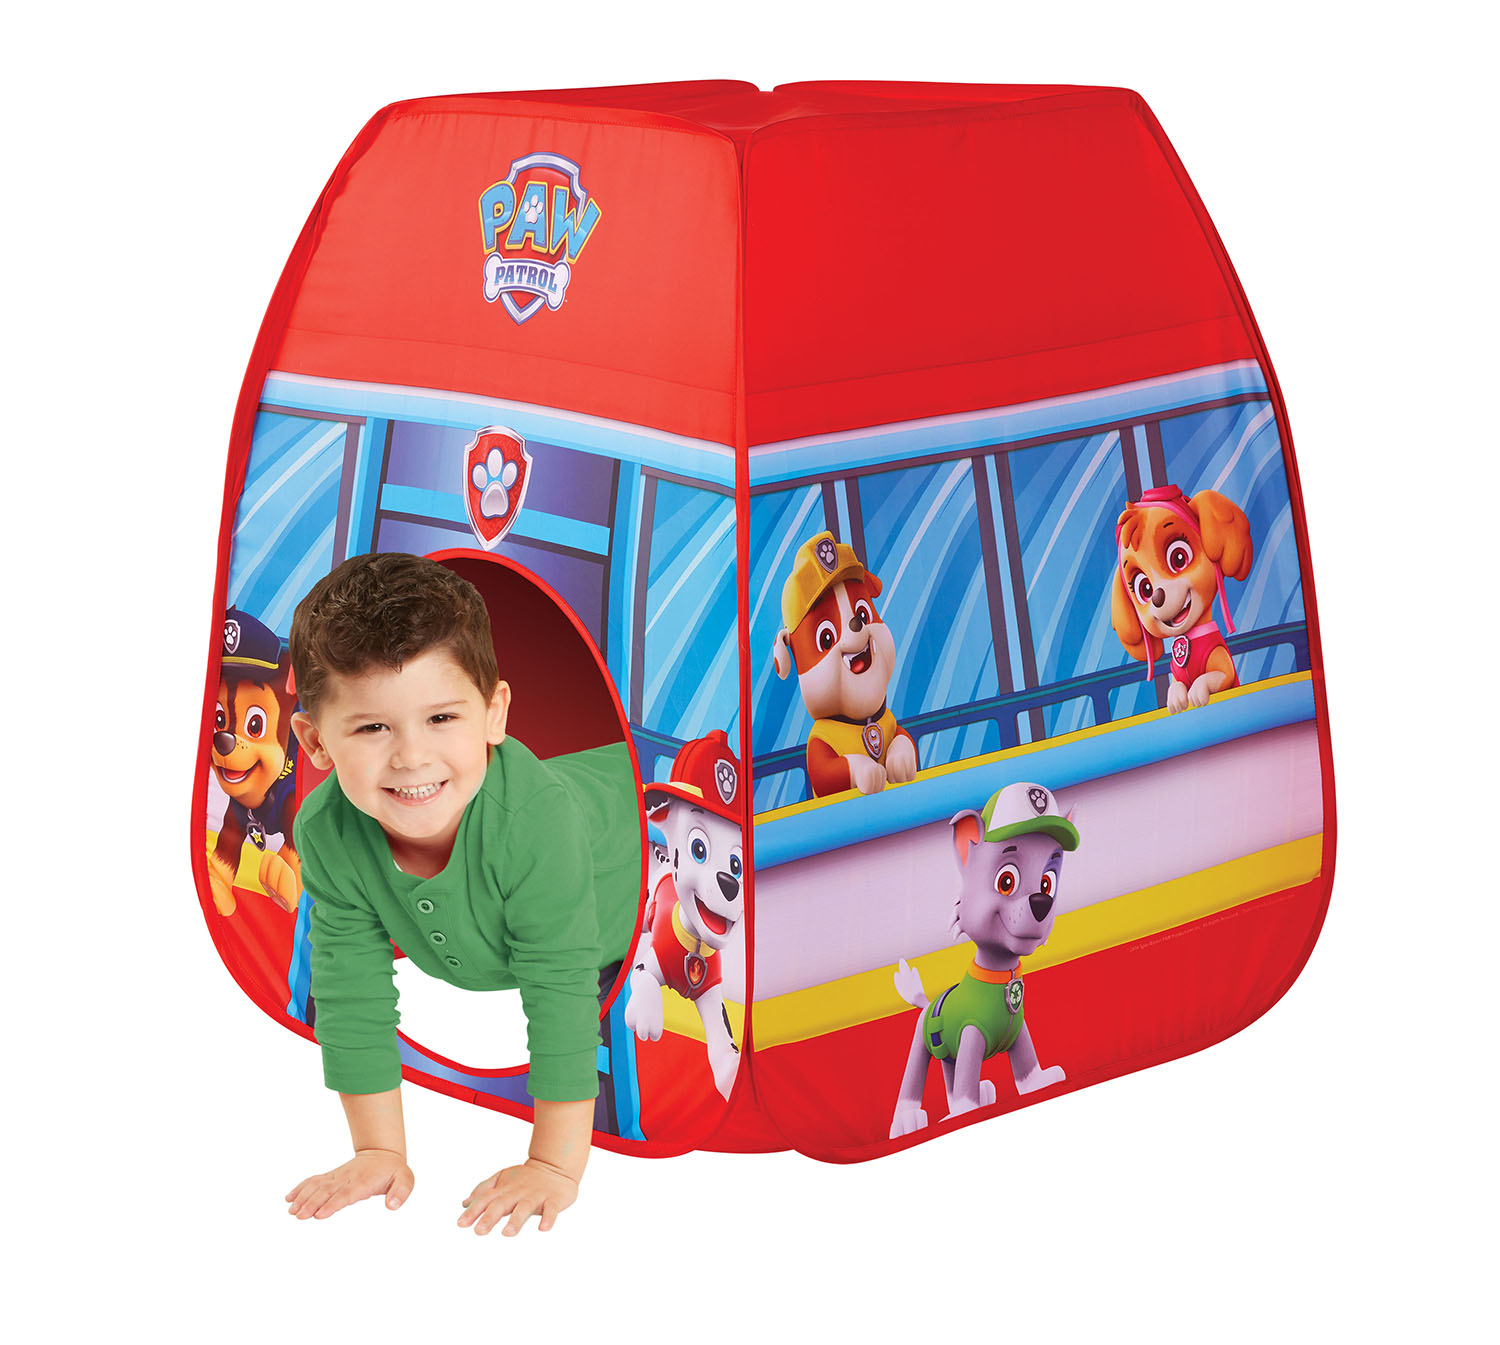 Paw Patrol Character Indoor/Outdoor Play Tent Playhouse for Kids Boys/Girls with Easy Pop Up Set (Walmart)